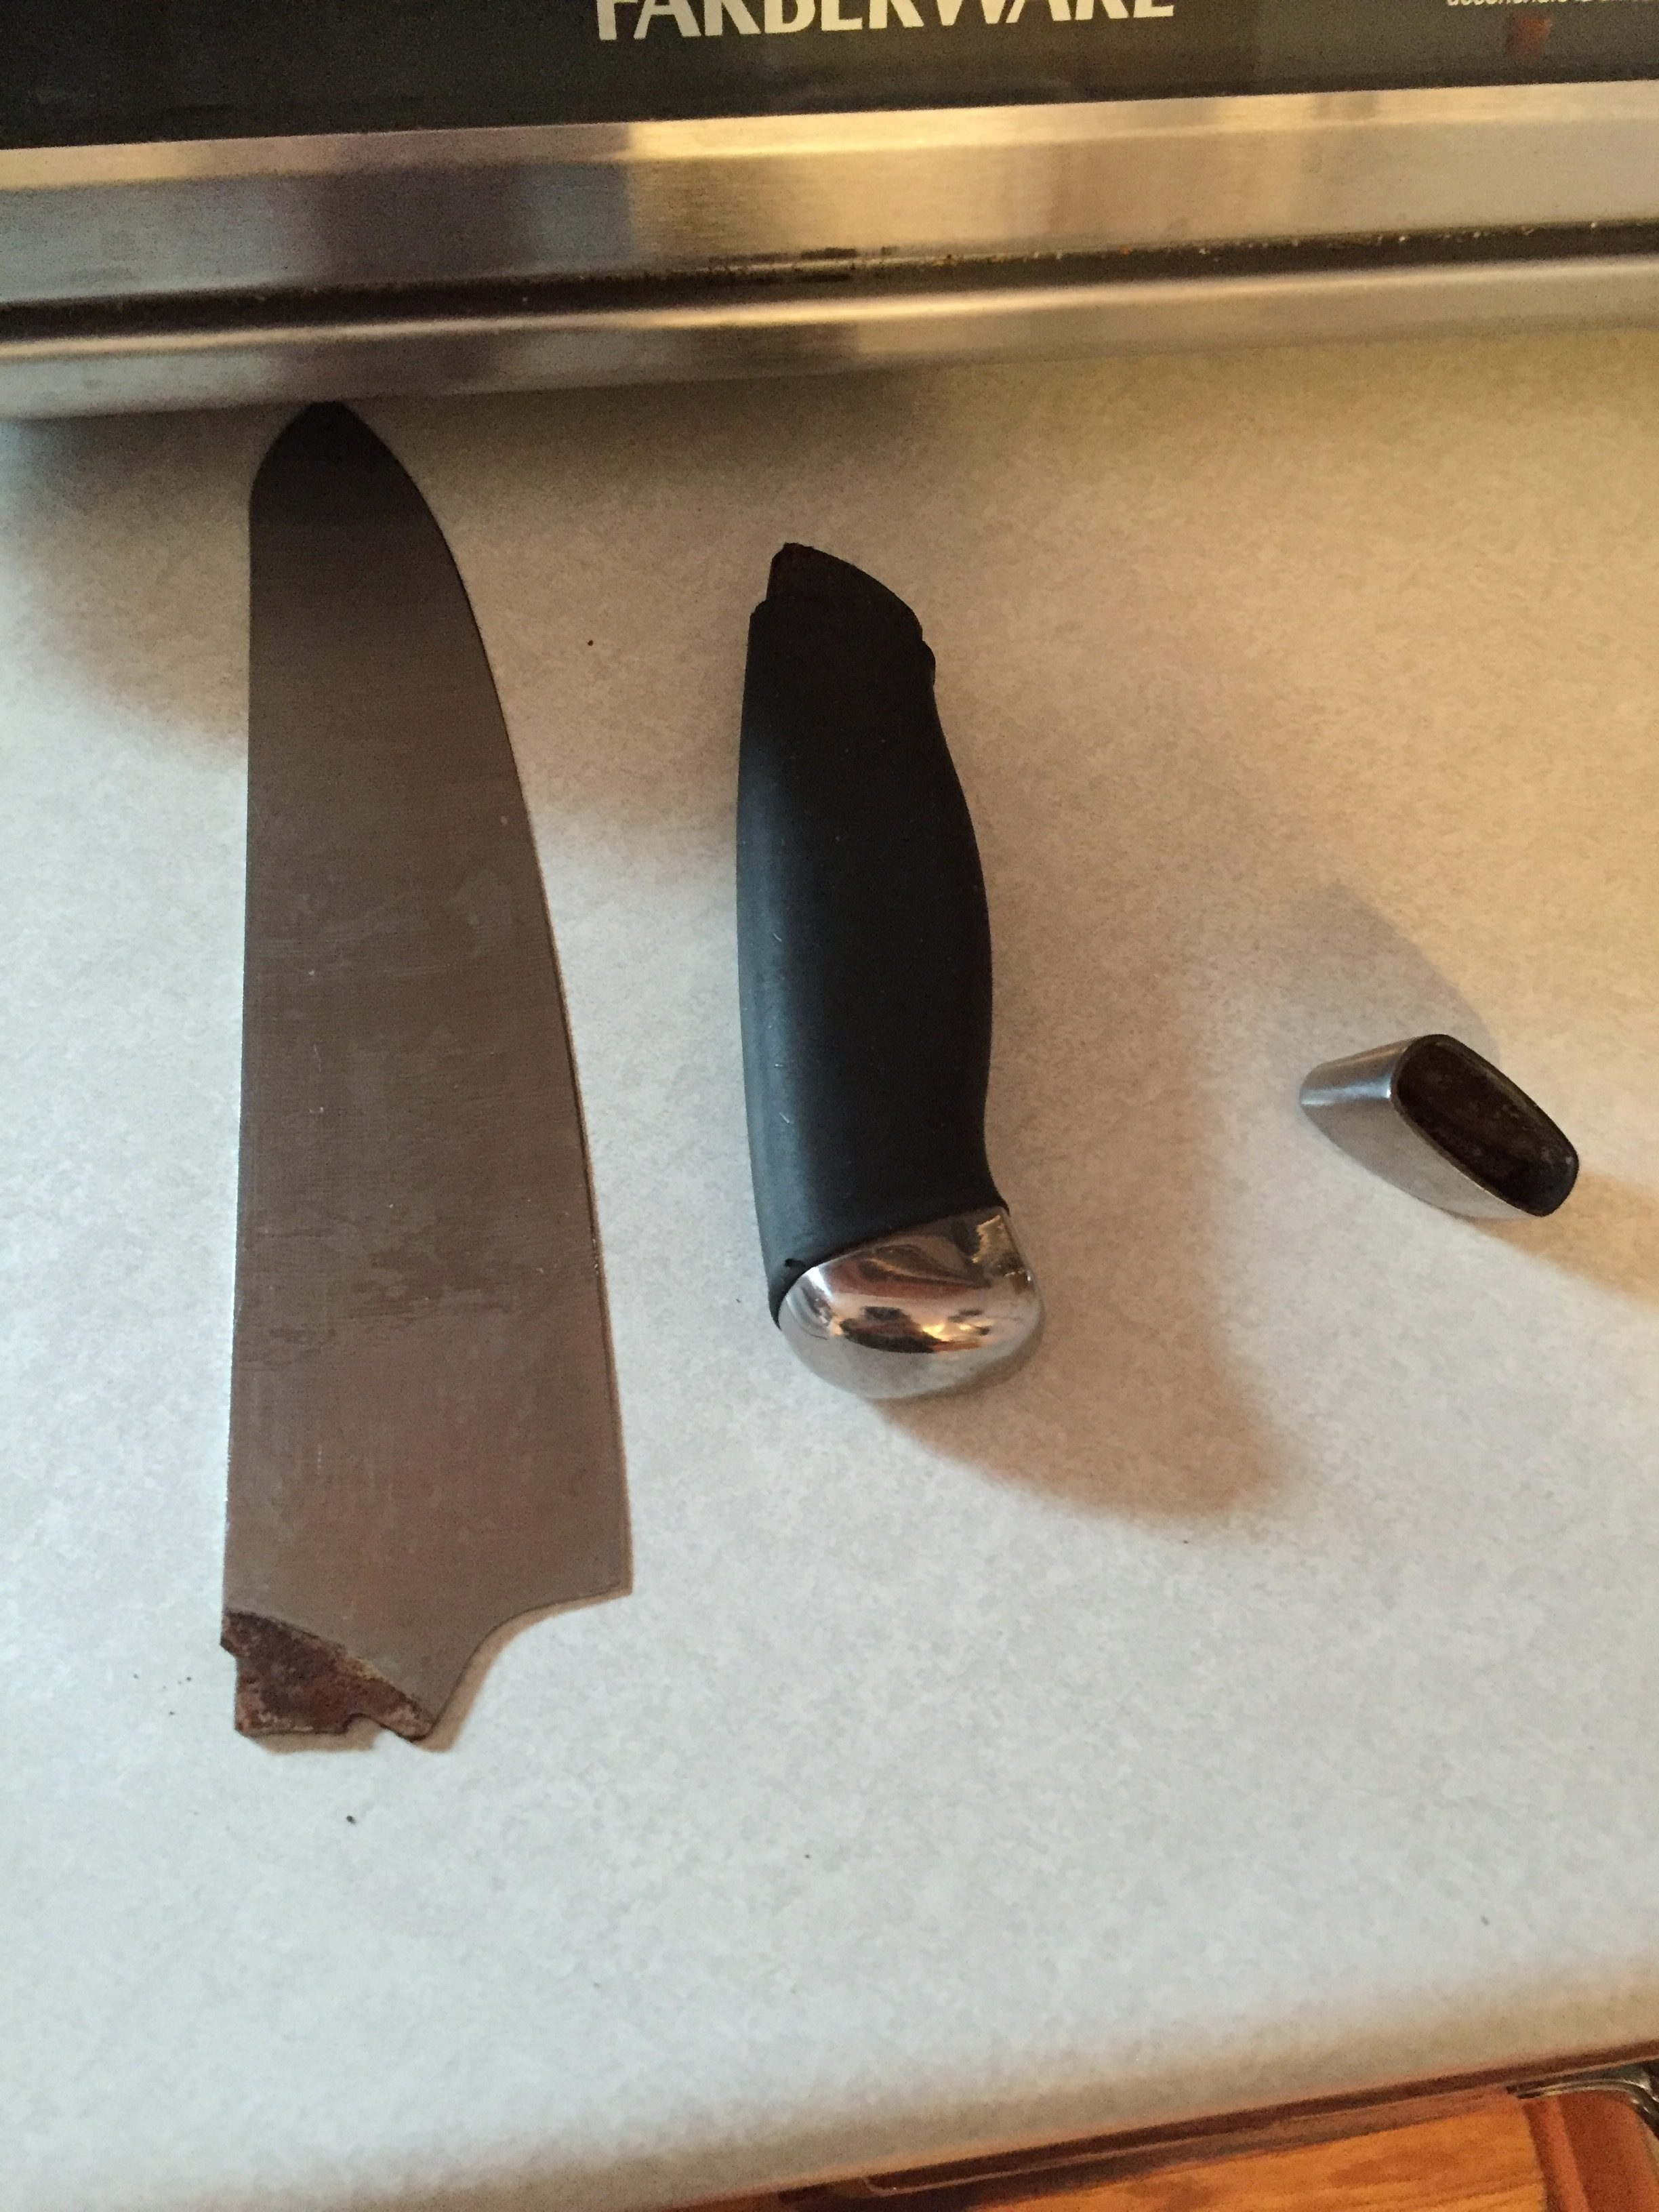 how to fix a broken manual can opener